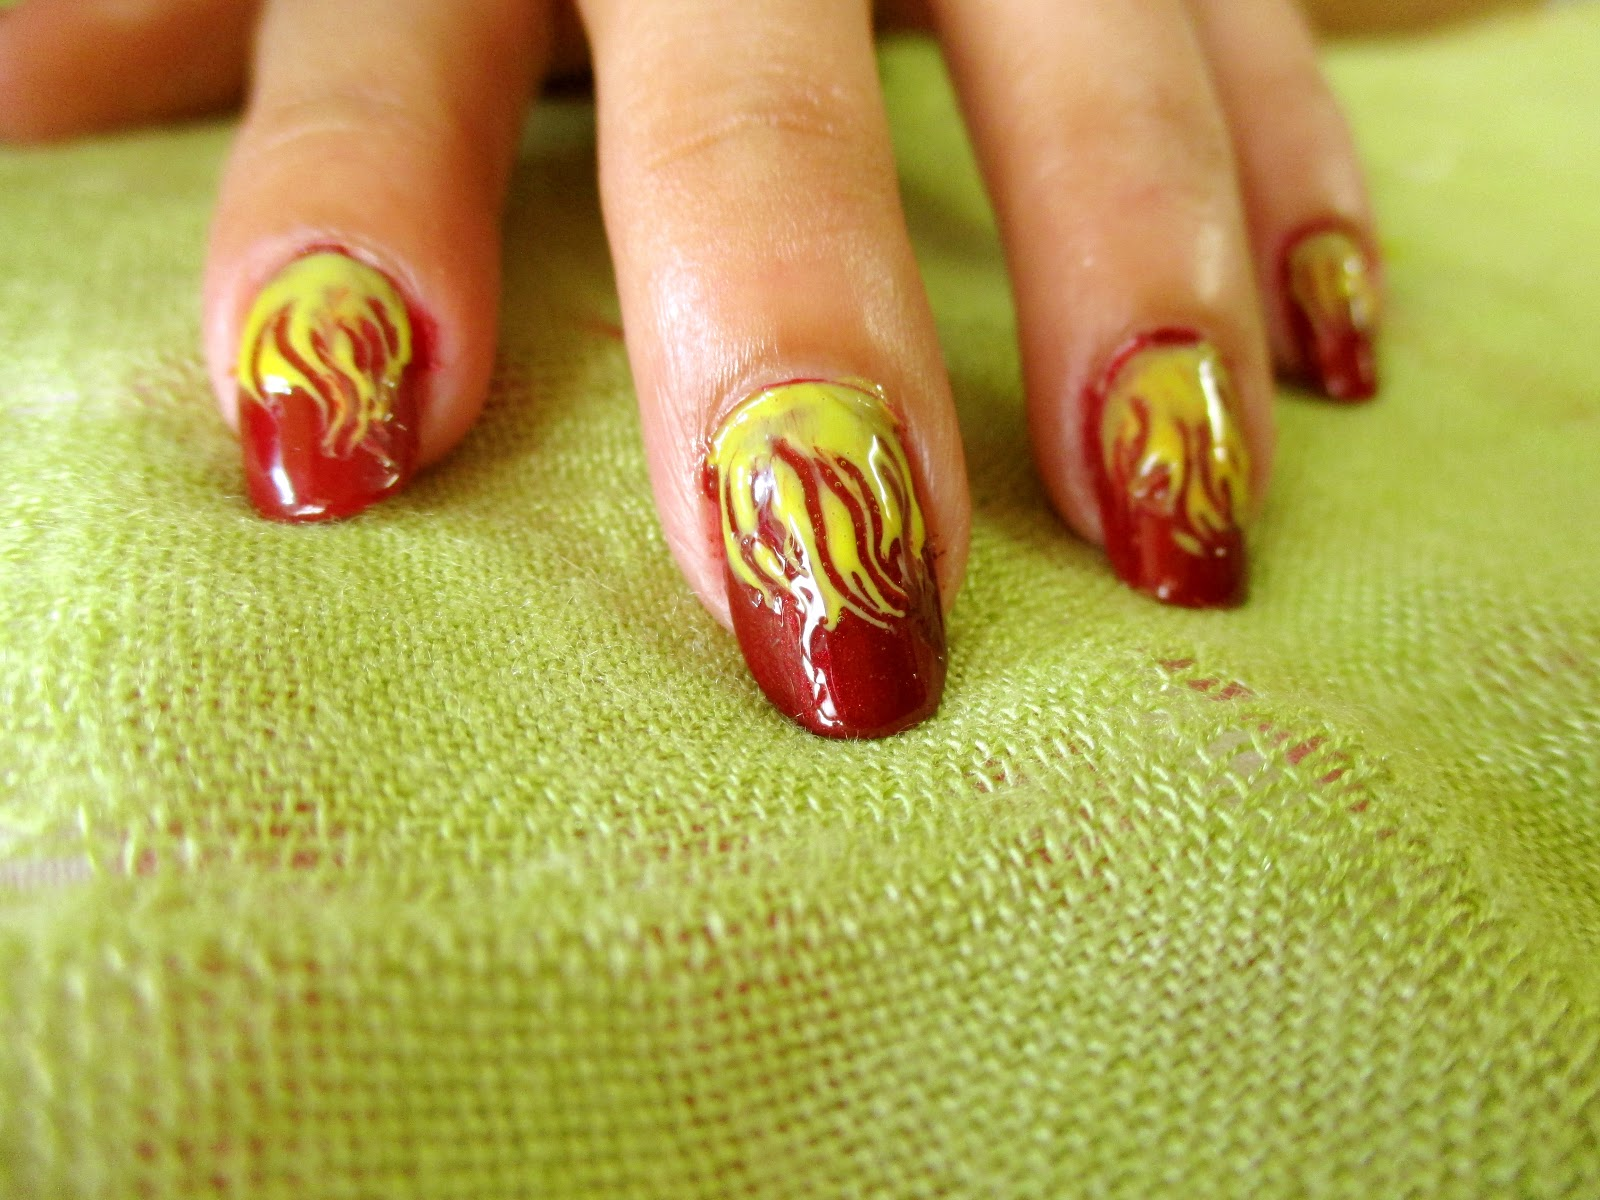 Style small world easy and simple fiery nails art design easy and simple fiery nails art design without tools for beginner prinsesfo Images